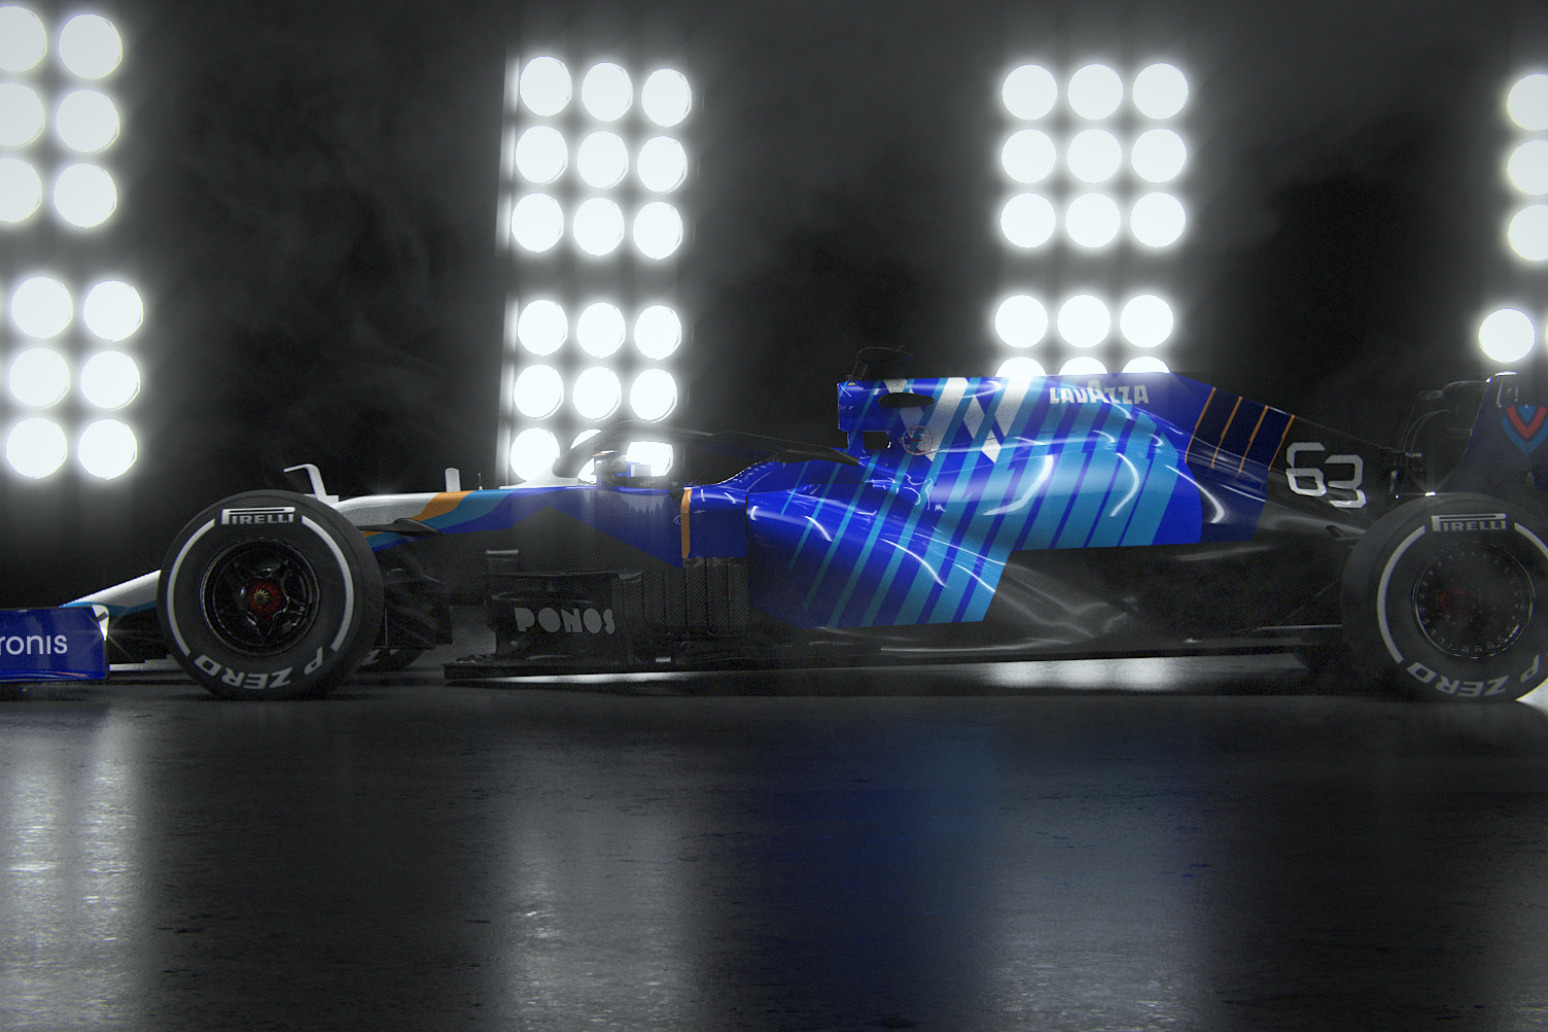 Williams Racing announces plan to be 'climate positive' by 2030